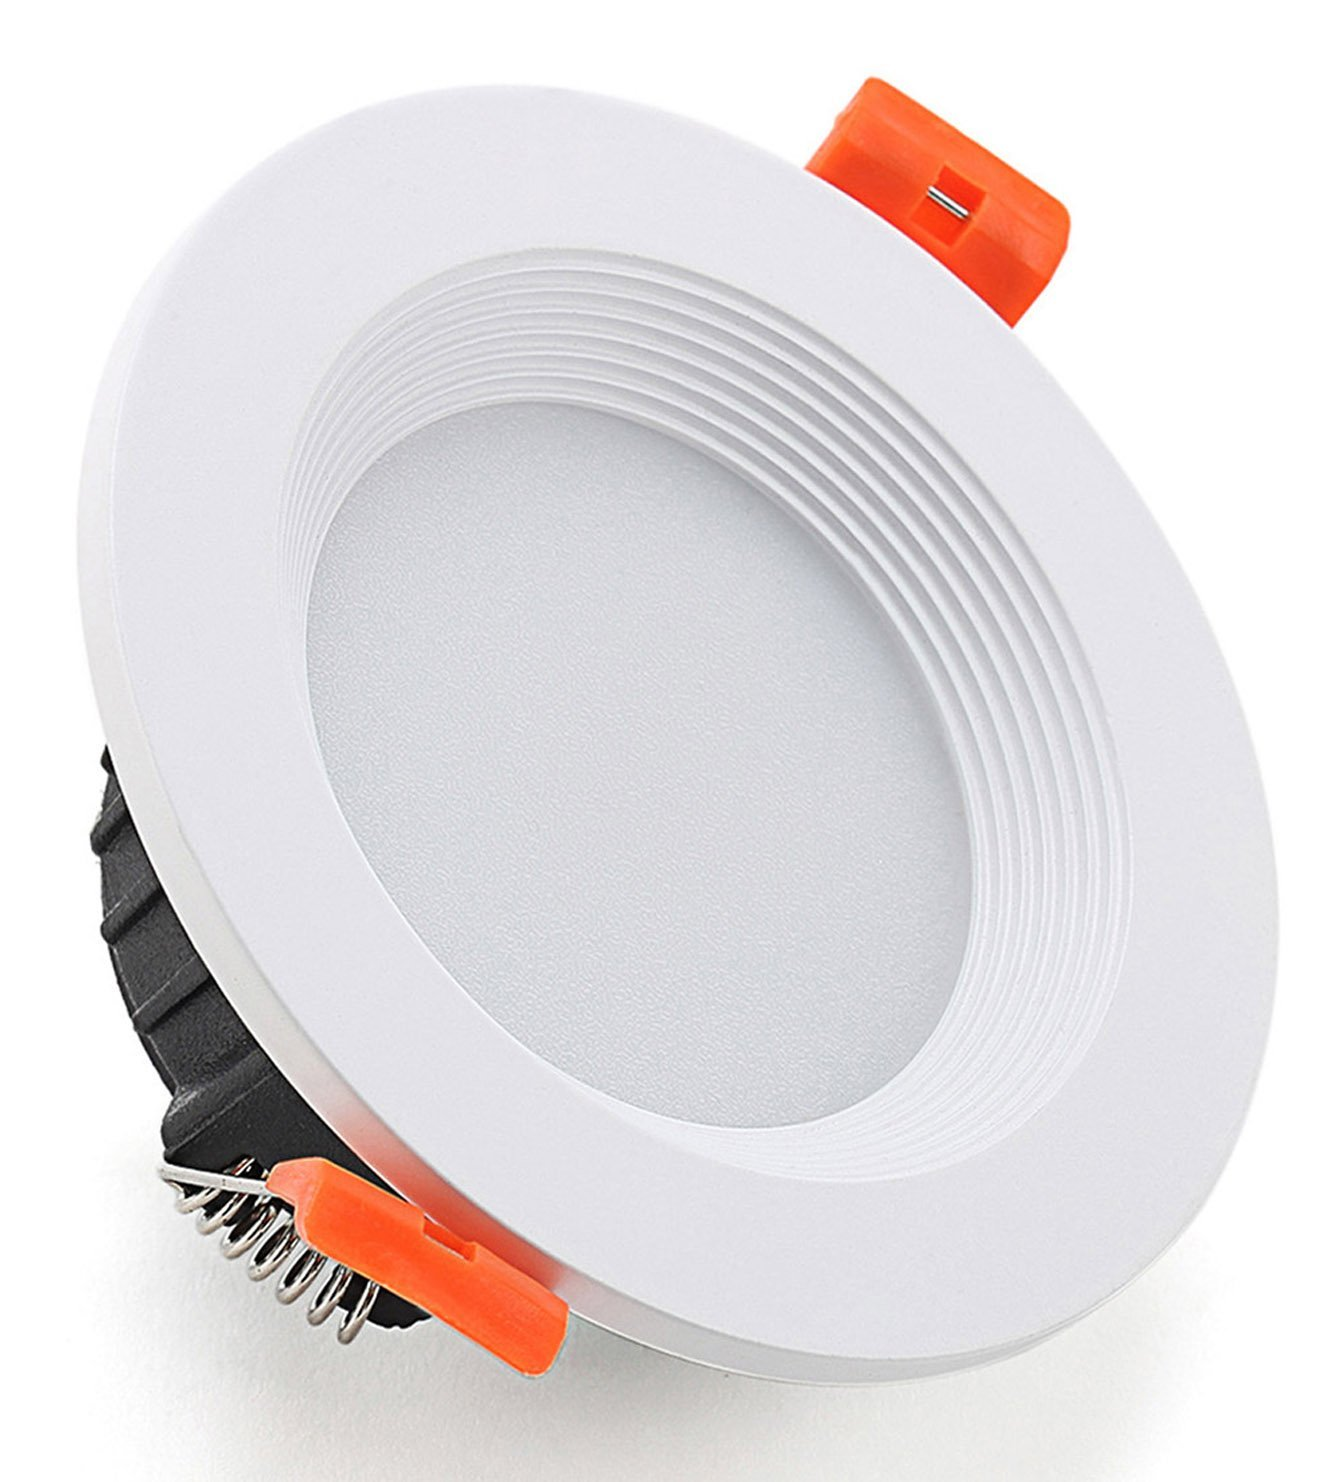 Diranda Round LED Recessed Ceiling Light Retrofit Cool White 6000-6500K 12W 5.83'' With Led Driver Lighting Lamp Fixture AC 85-265V